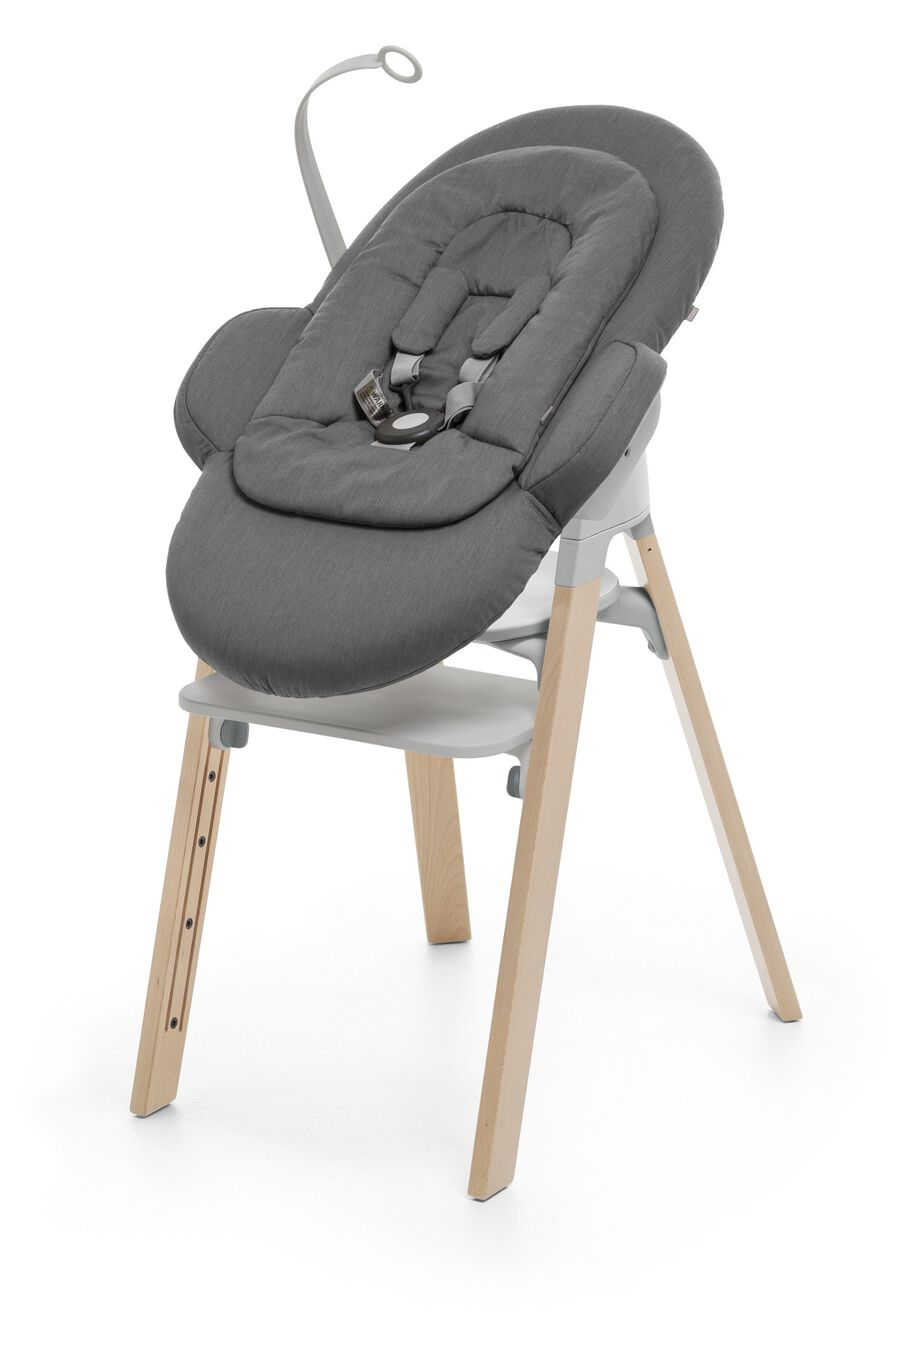 Stokke® Steps™ Natural with Light Grey plastic and Newborn Set in Deep Grey.